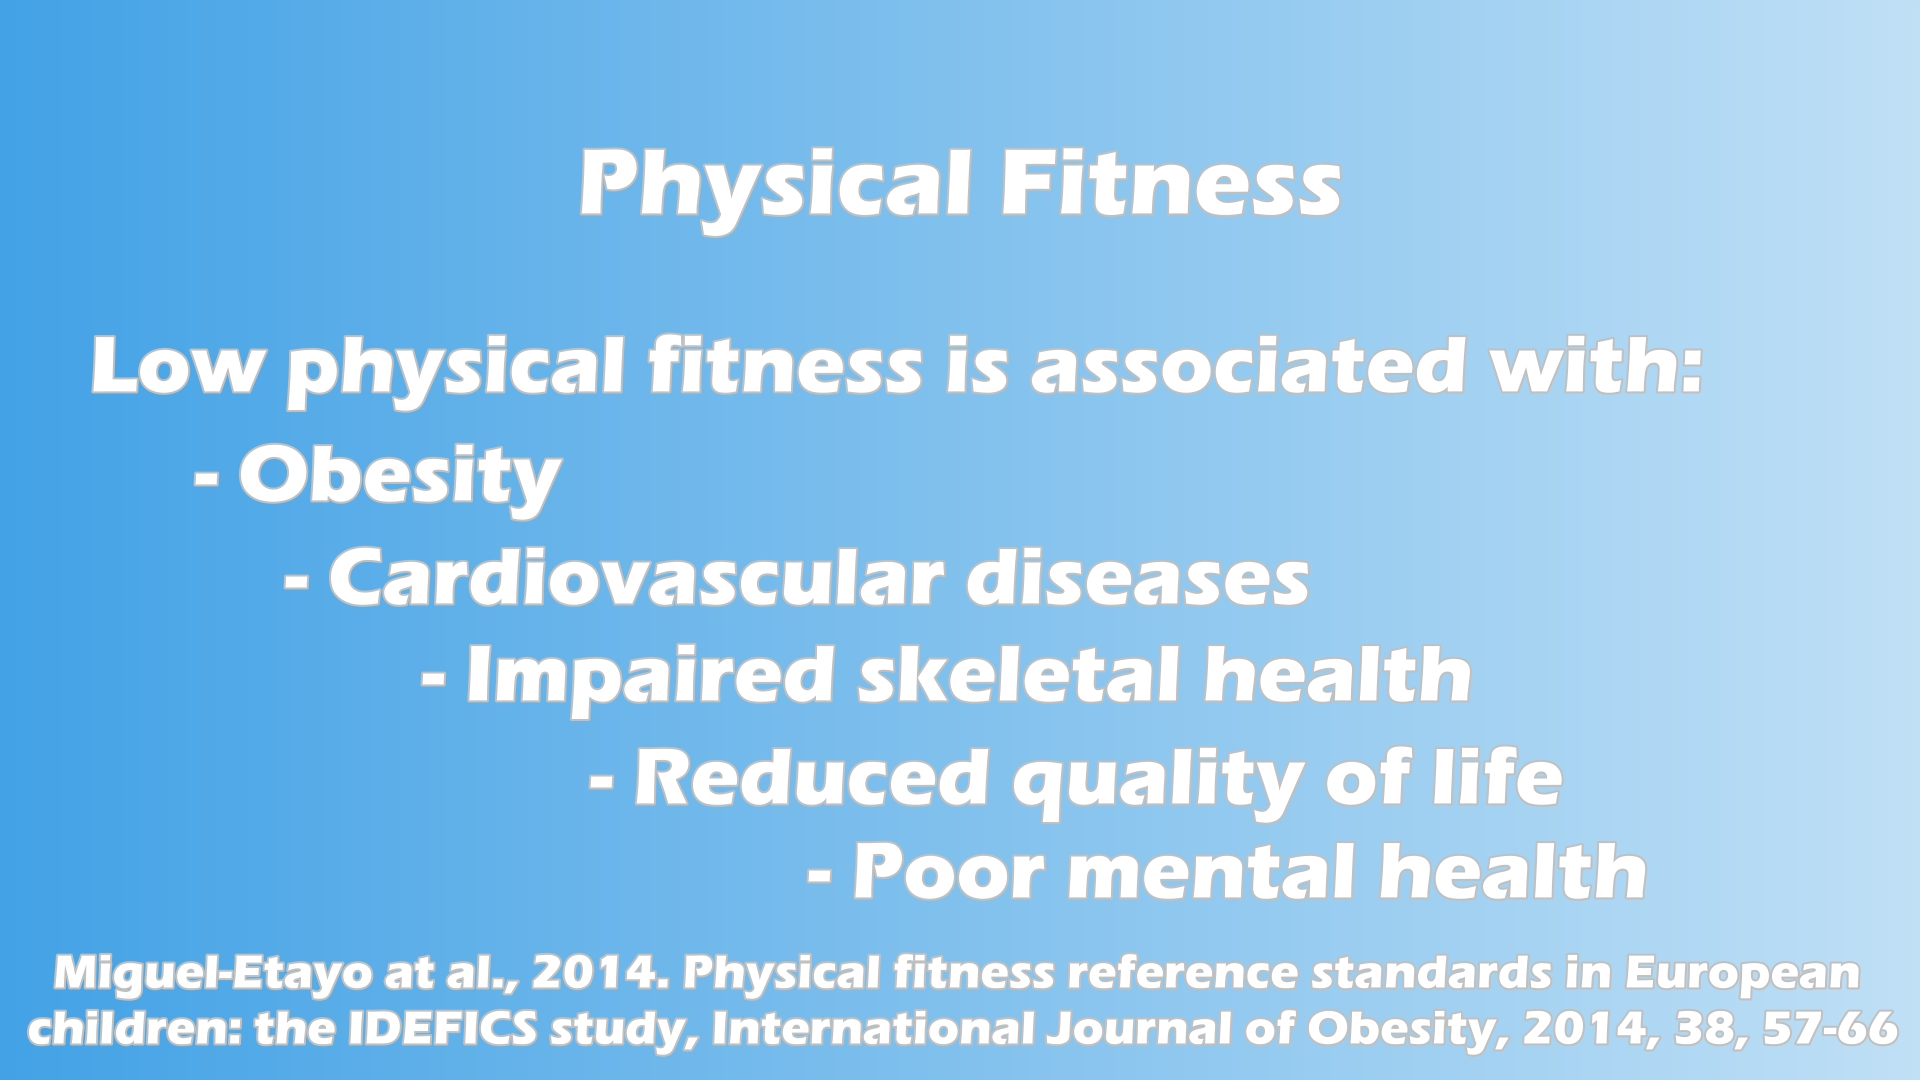 Low Physical Fitness is Associated with